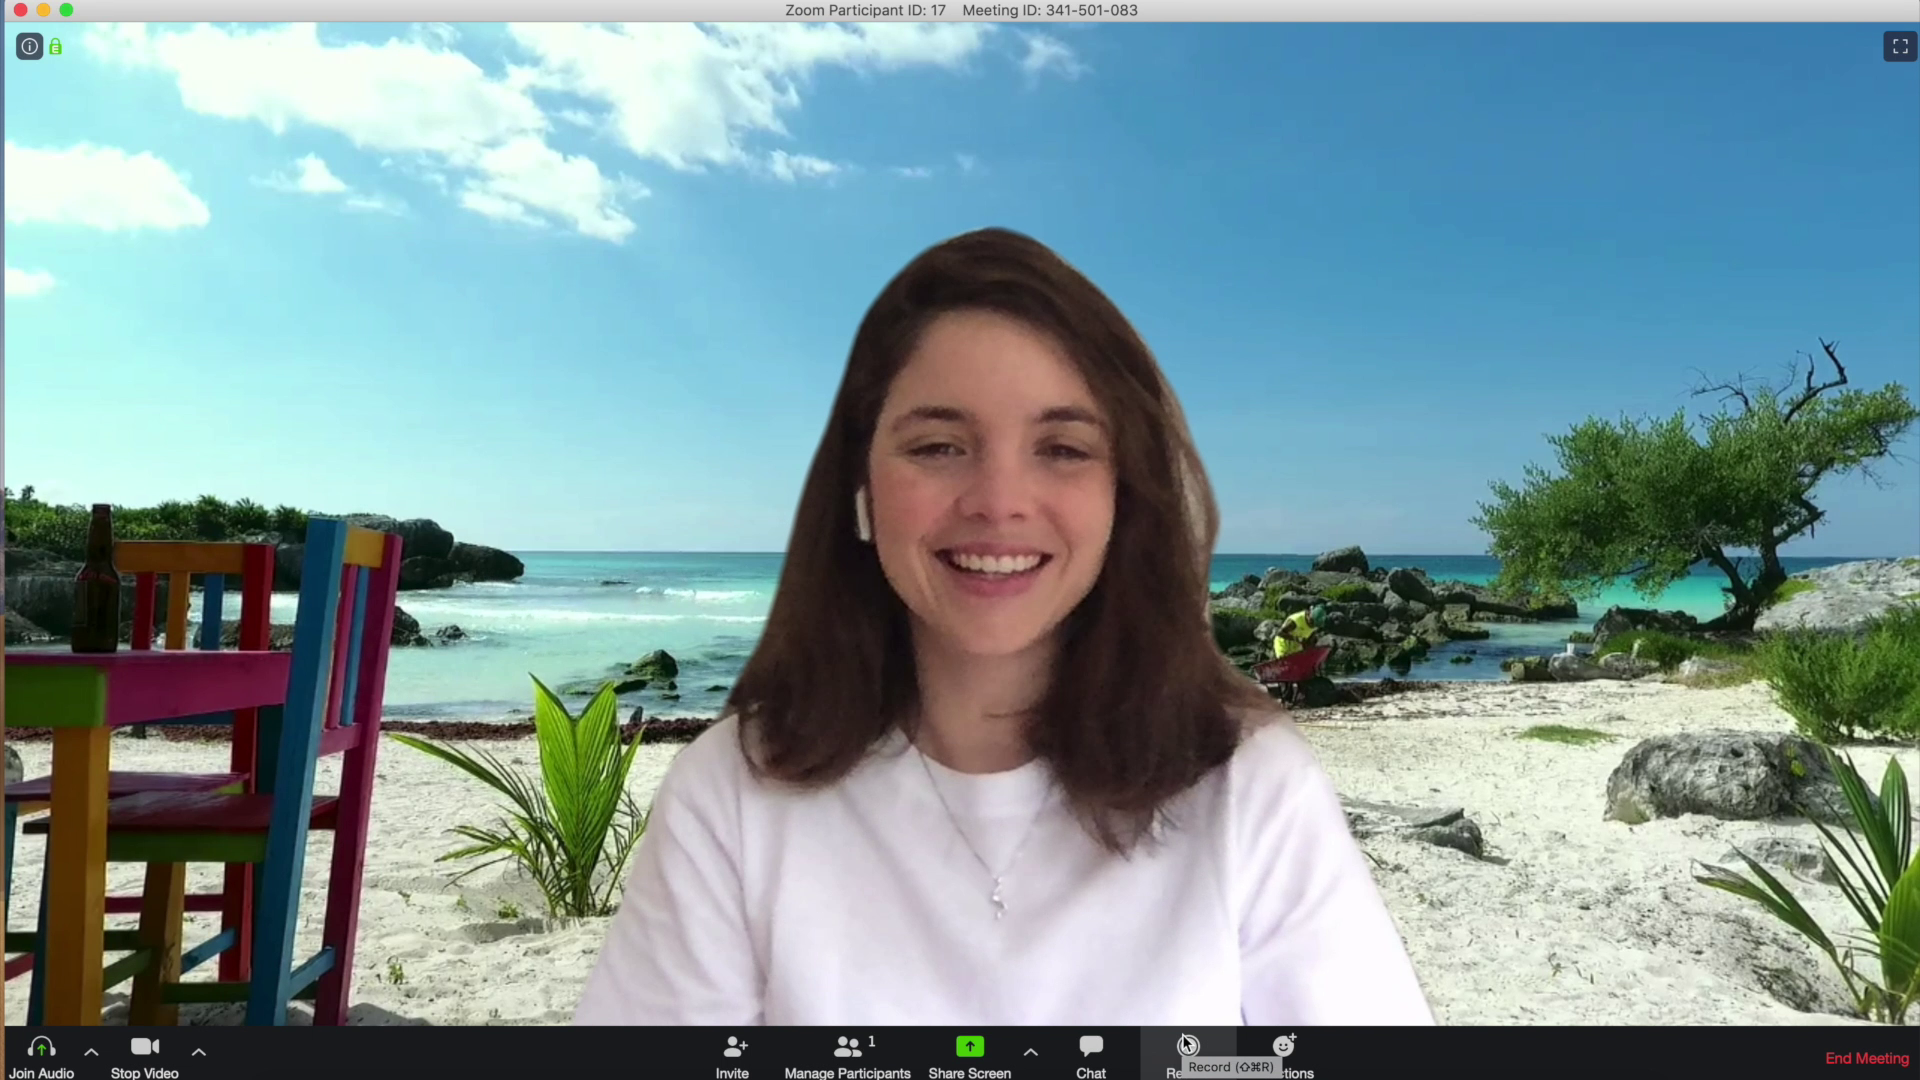 Rock Your Zoom Video Meetings With Fun Video Backgrounds By Coverr Coverr Medium